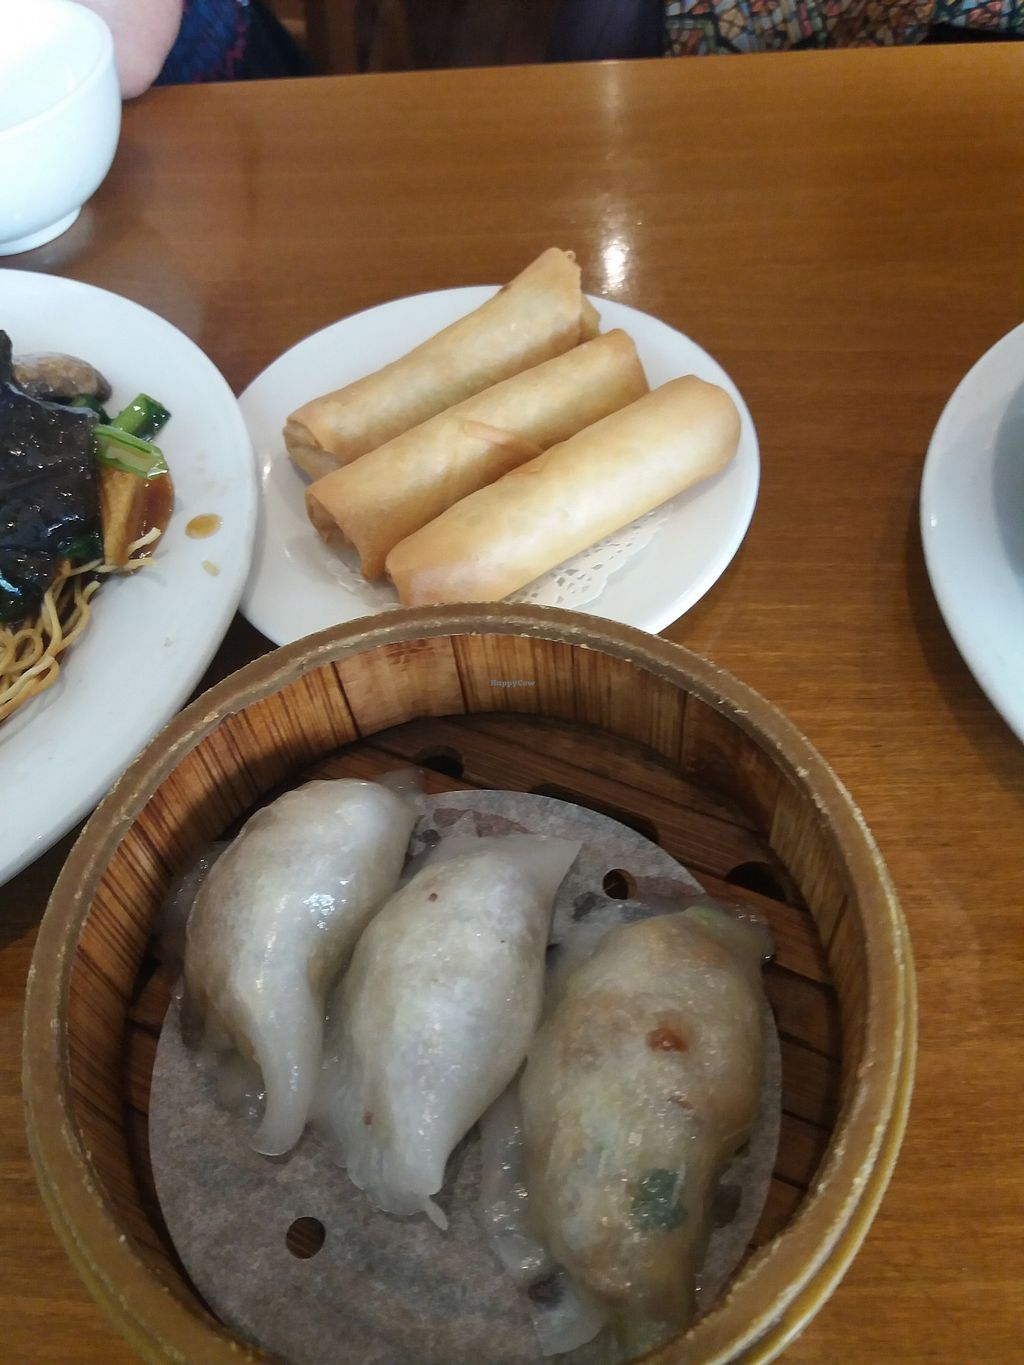 "Photo of Green Gourmet  by <a href=""/members/profile/veganvirtues"">veganvirtues</a> <br/>Fried spring rools and steamed dumplings <br/> September 17, 2017  - <a href='/contact/abuse/image/482/305288'>Report</a>"